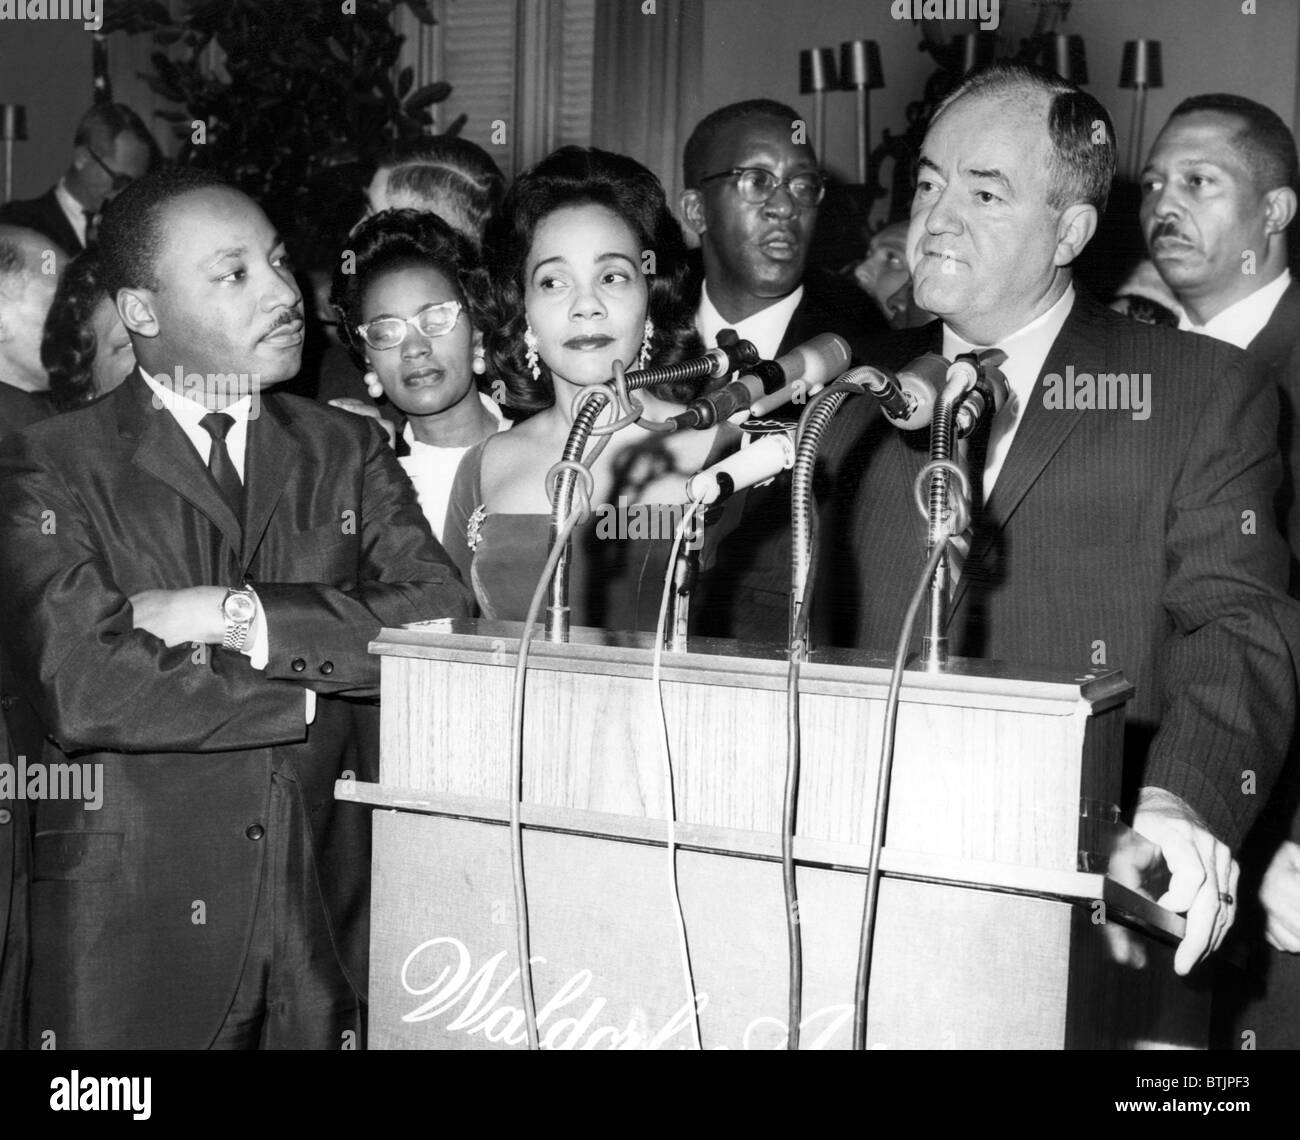 Dr. Martin Luther King Jr., with wife, Coretta Scott King,  Vice-President-elect Hubert Humphrey, speaking at reception Stock Photo